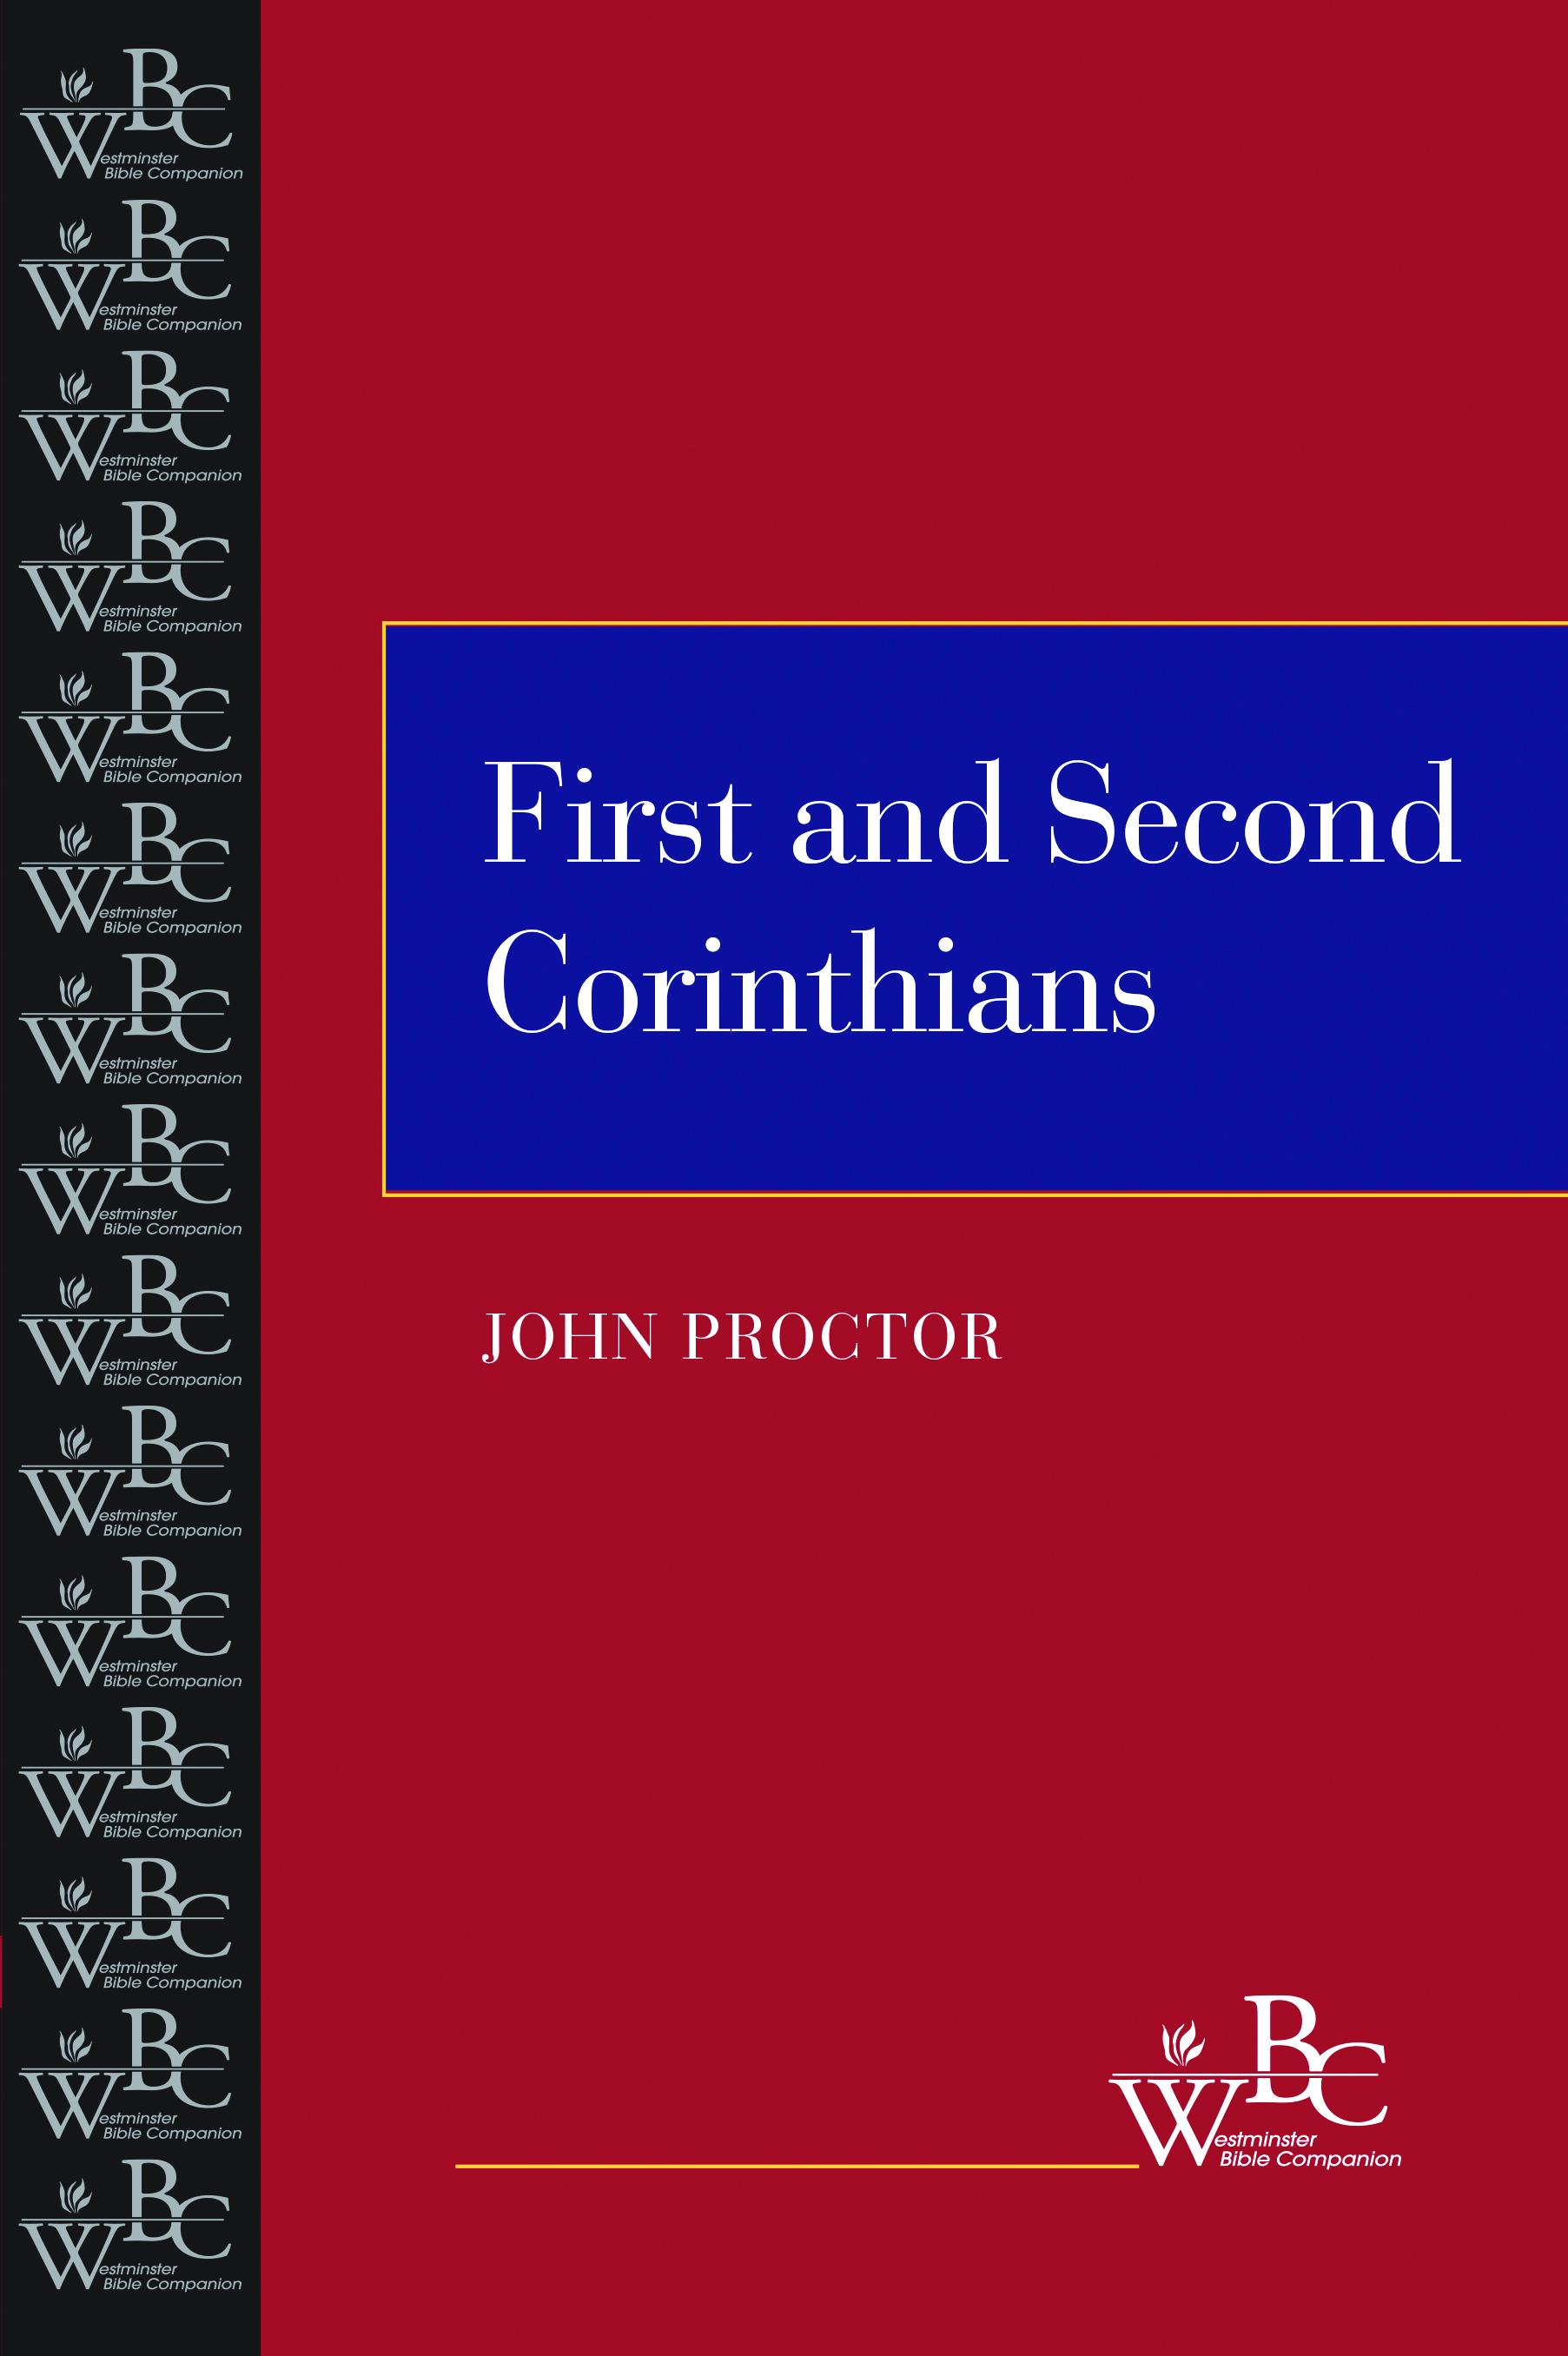 First and Second Corinthians